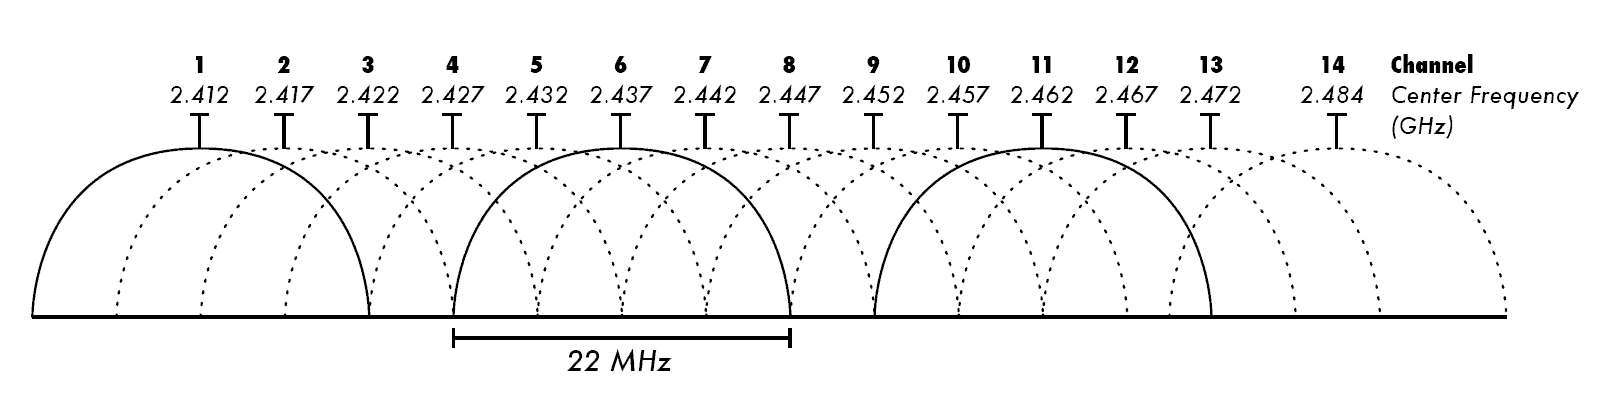 Channels in 2.4GHz band